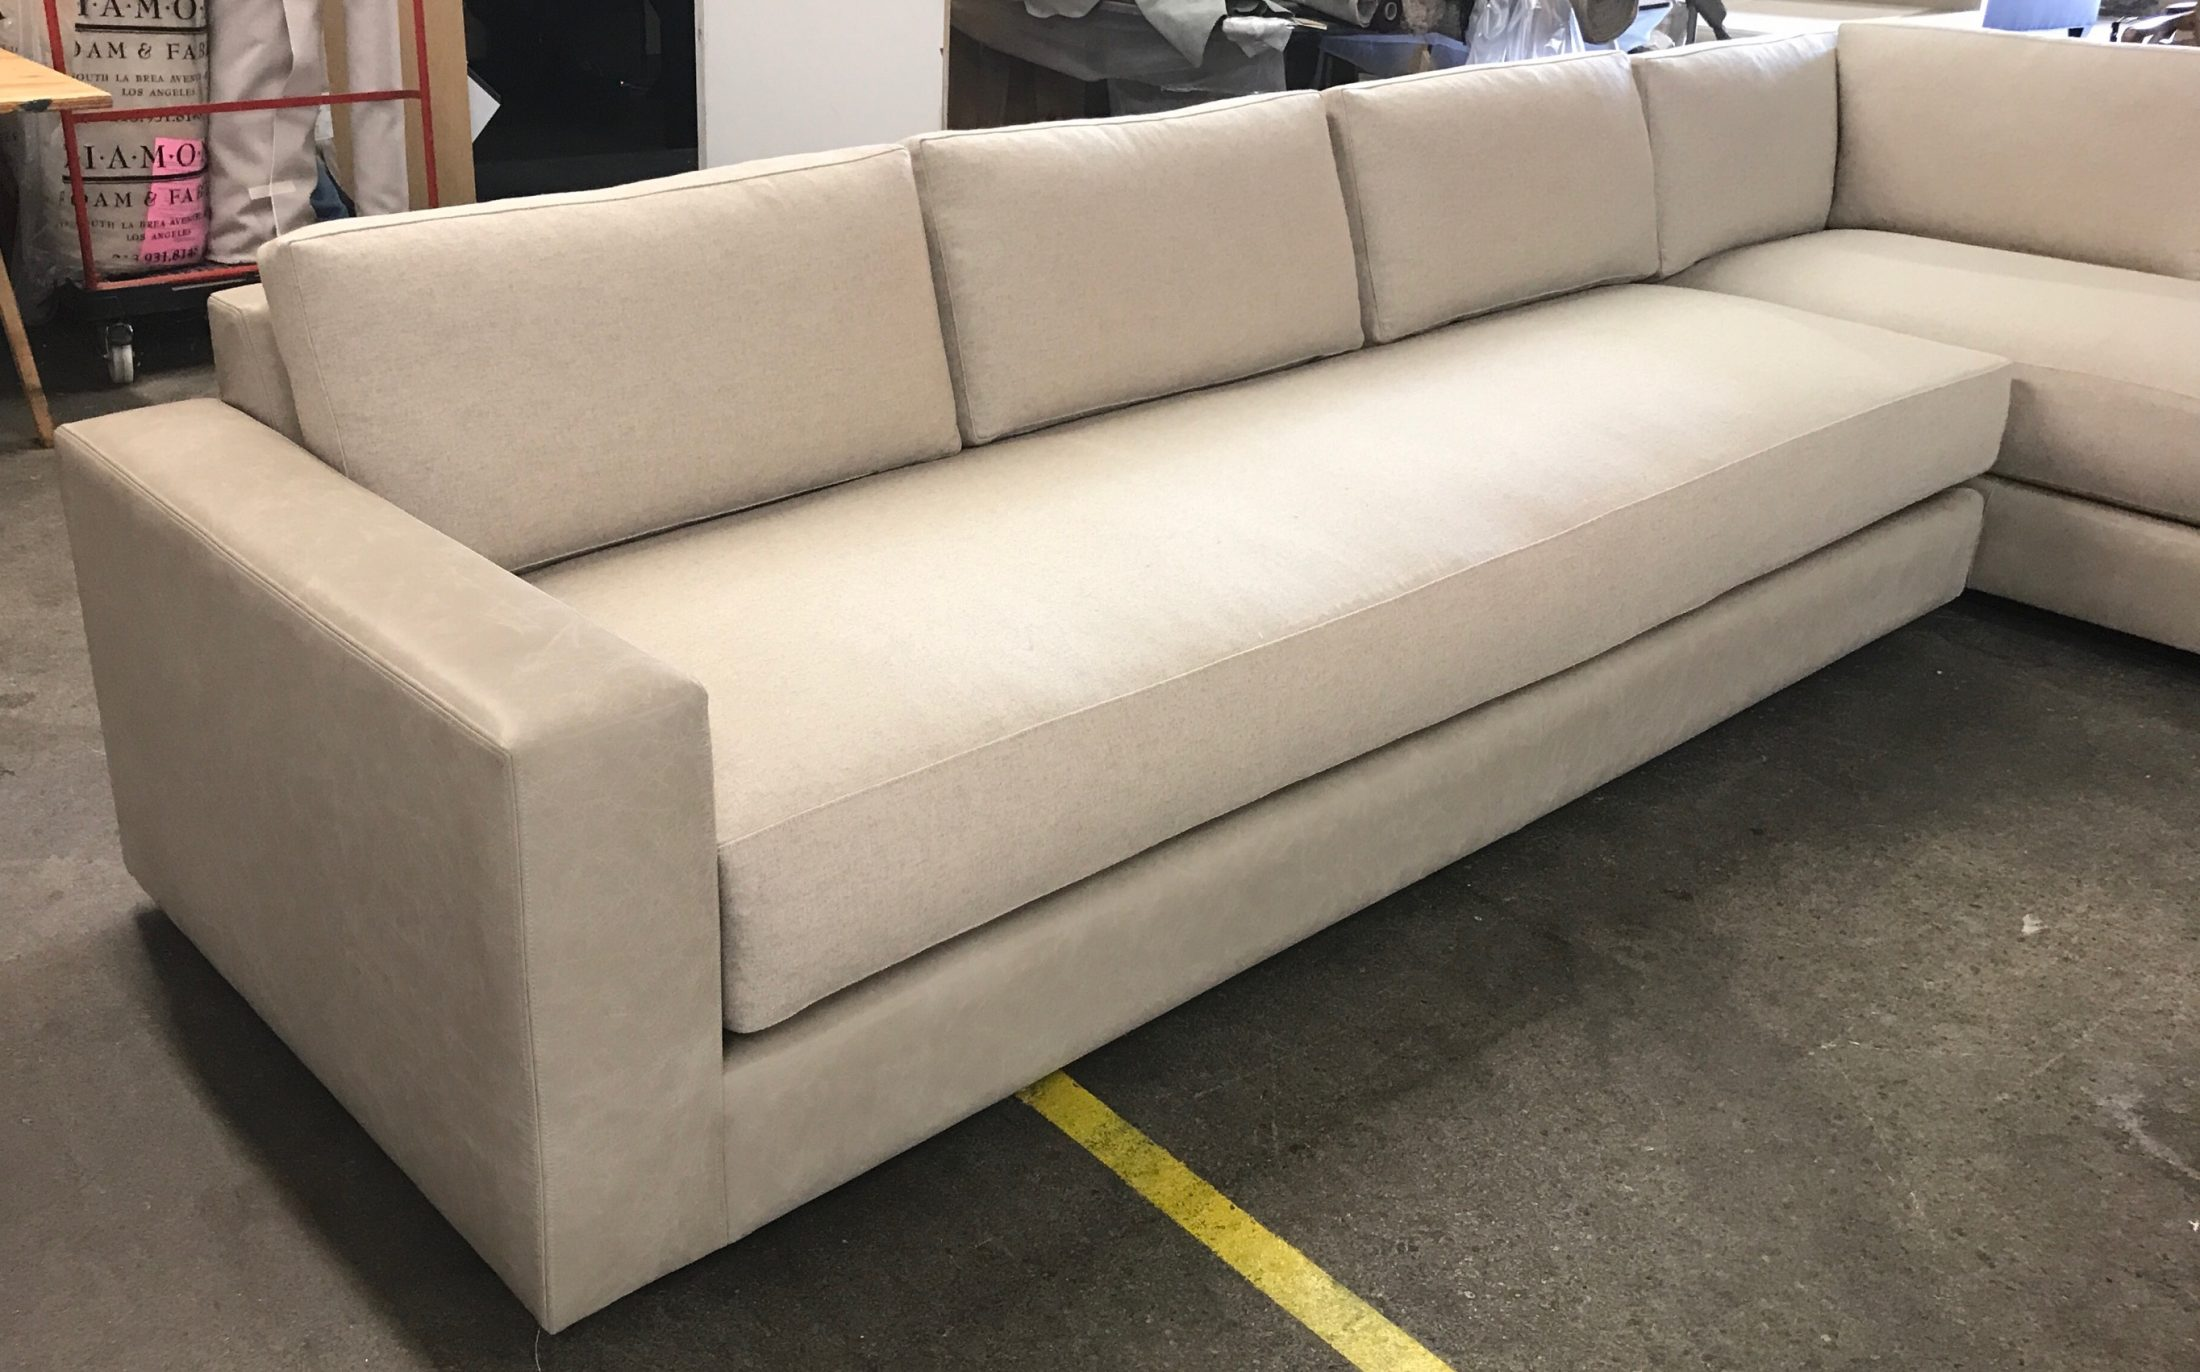 Admirable Lola Sectional Arden Home Caraccident5 Cool Chair Designs And Ideas Caraccident5Info